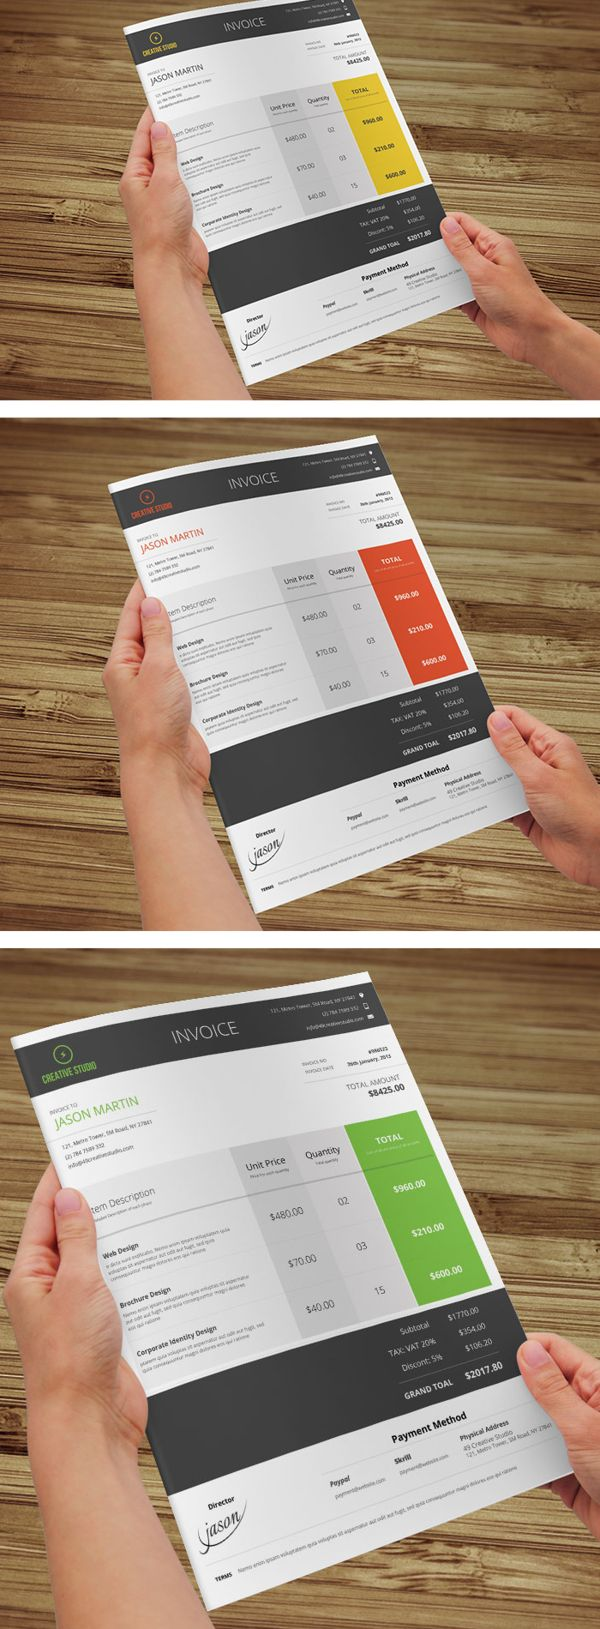 Sample Catering Invoice Word Best  Invoice Sample Ideas On Pinterest  Invoice Example Http  Free Invoicing App Pdf with Money Transfer Receipt Word  Creative Invoice Template Designs Restaurant Receipts Templates Pdf